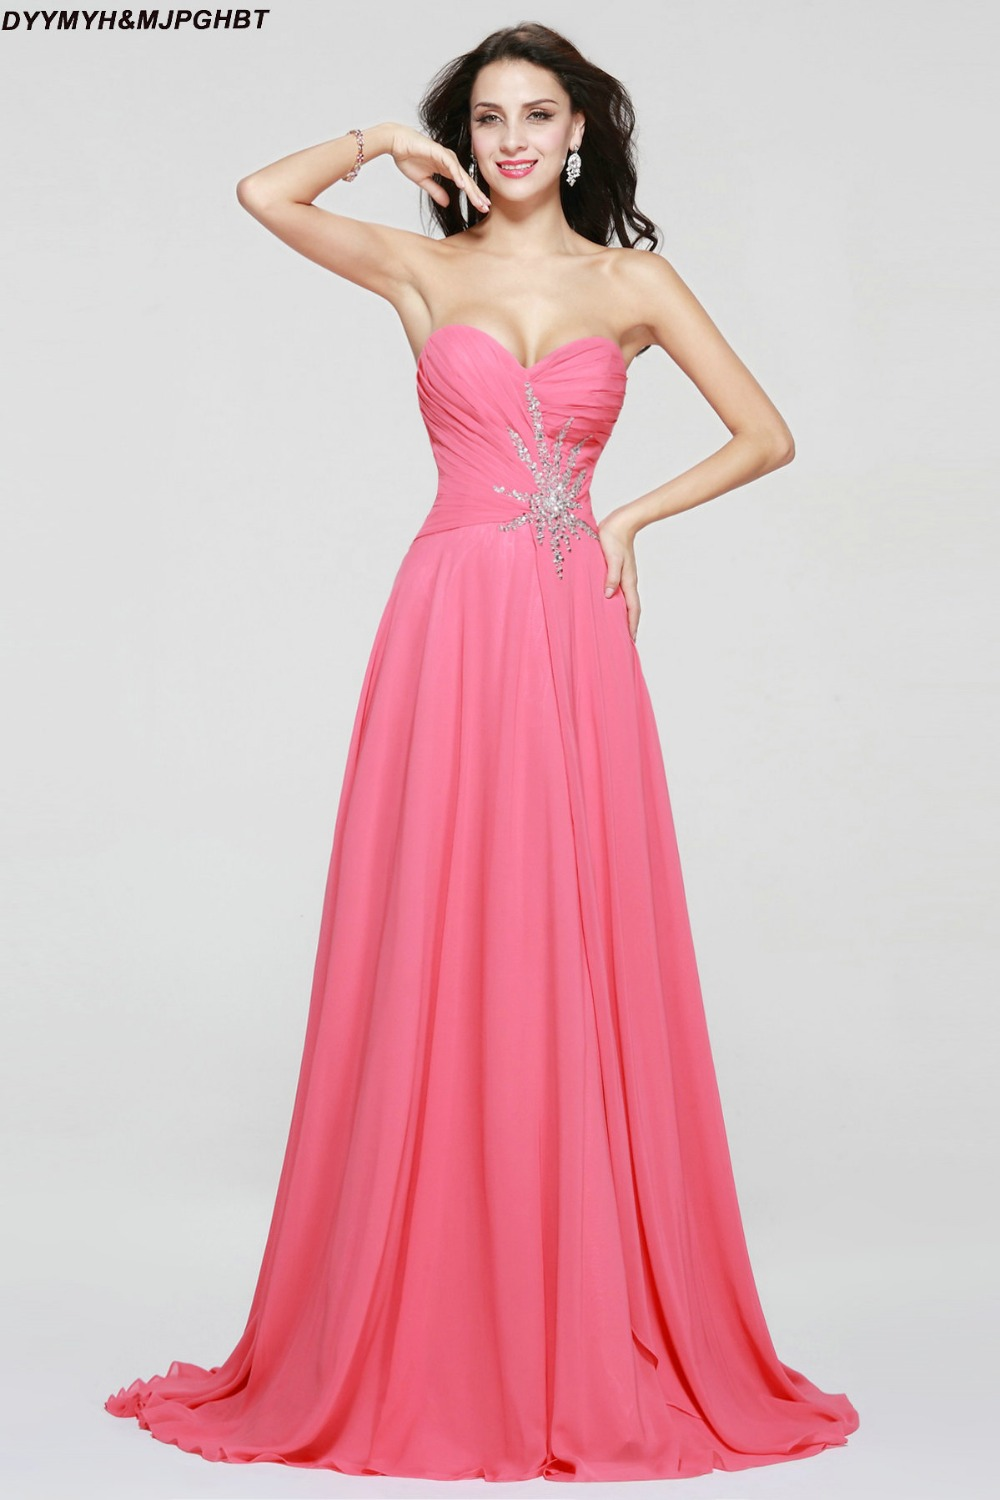 Online buy wholesale long hot pink bridesmaid dresses from china afforable hot pink maid of honor gowns sweetheart with pleatbeads peach long bridesmaid dresses ombrellifo Gallery